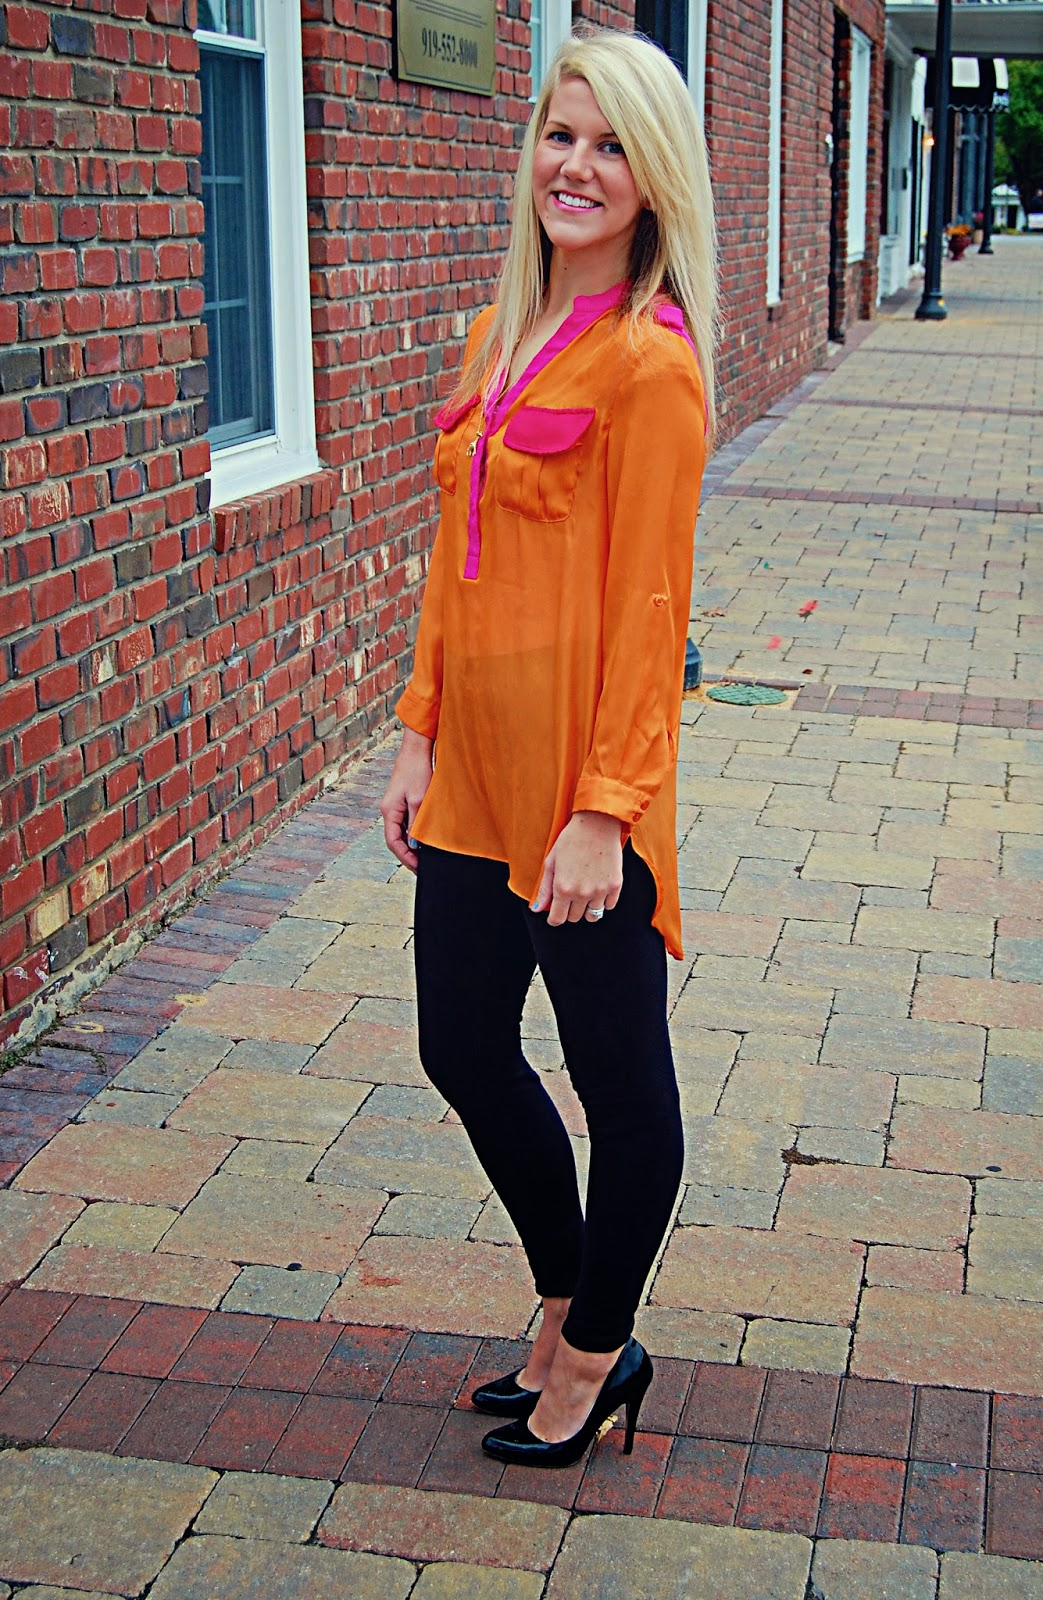 Dancing With Ashley: 3 WAYS TO WEAR LEGGINGS